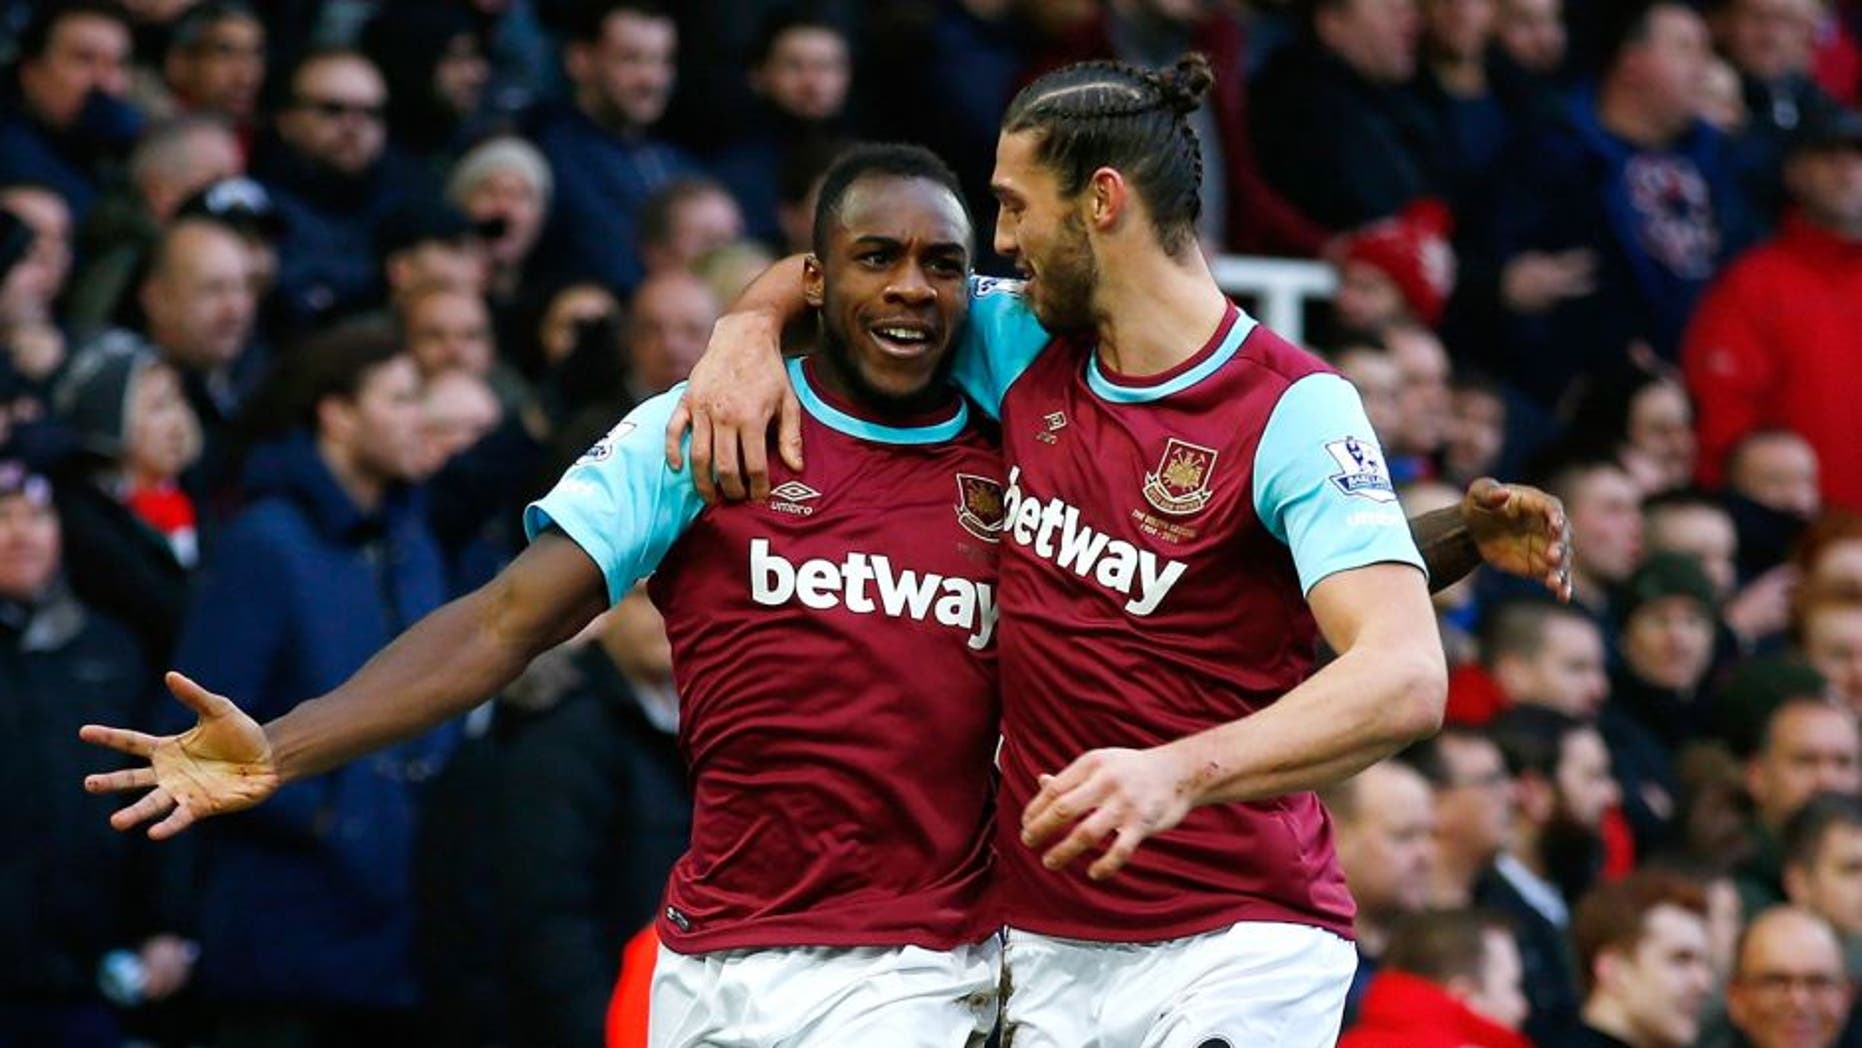 LONDON, ENGLAND - JANUARY 02: Michail Antonio (L) of West Ham United celebrates scoring his team's first goal with his team mate Andy Carroll (R) during the Barclays Premier League match between West Ham United and Liverpool at Boleyn Ground on January 2, 2016 in London, England. (Photo by Clive Rose/Getty Images)